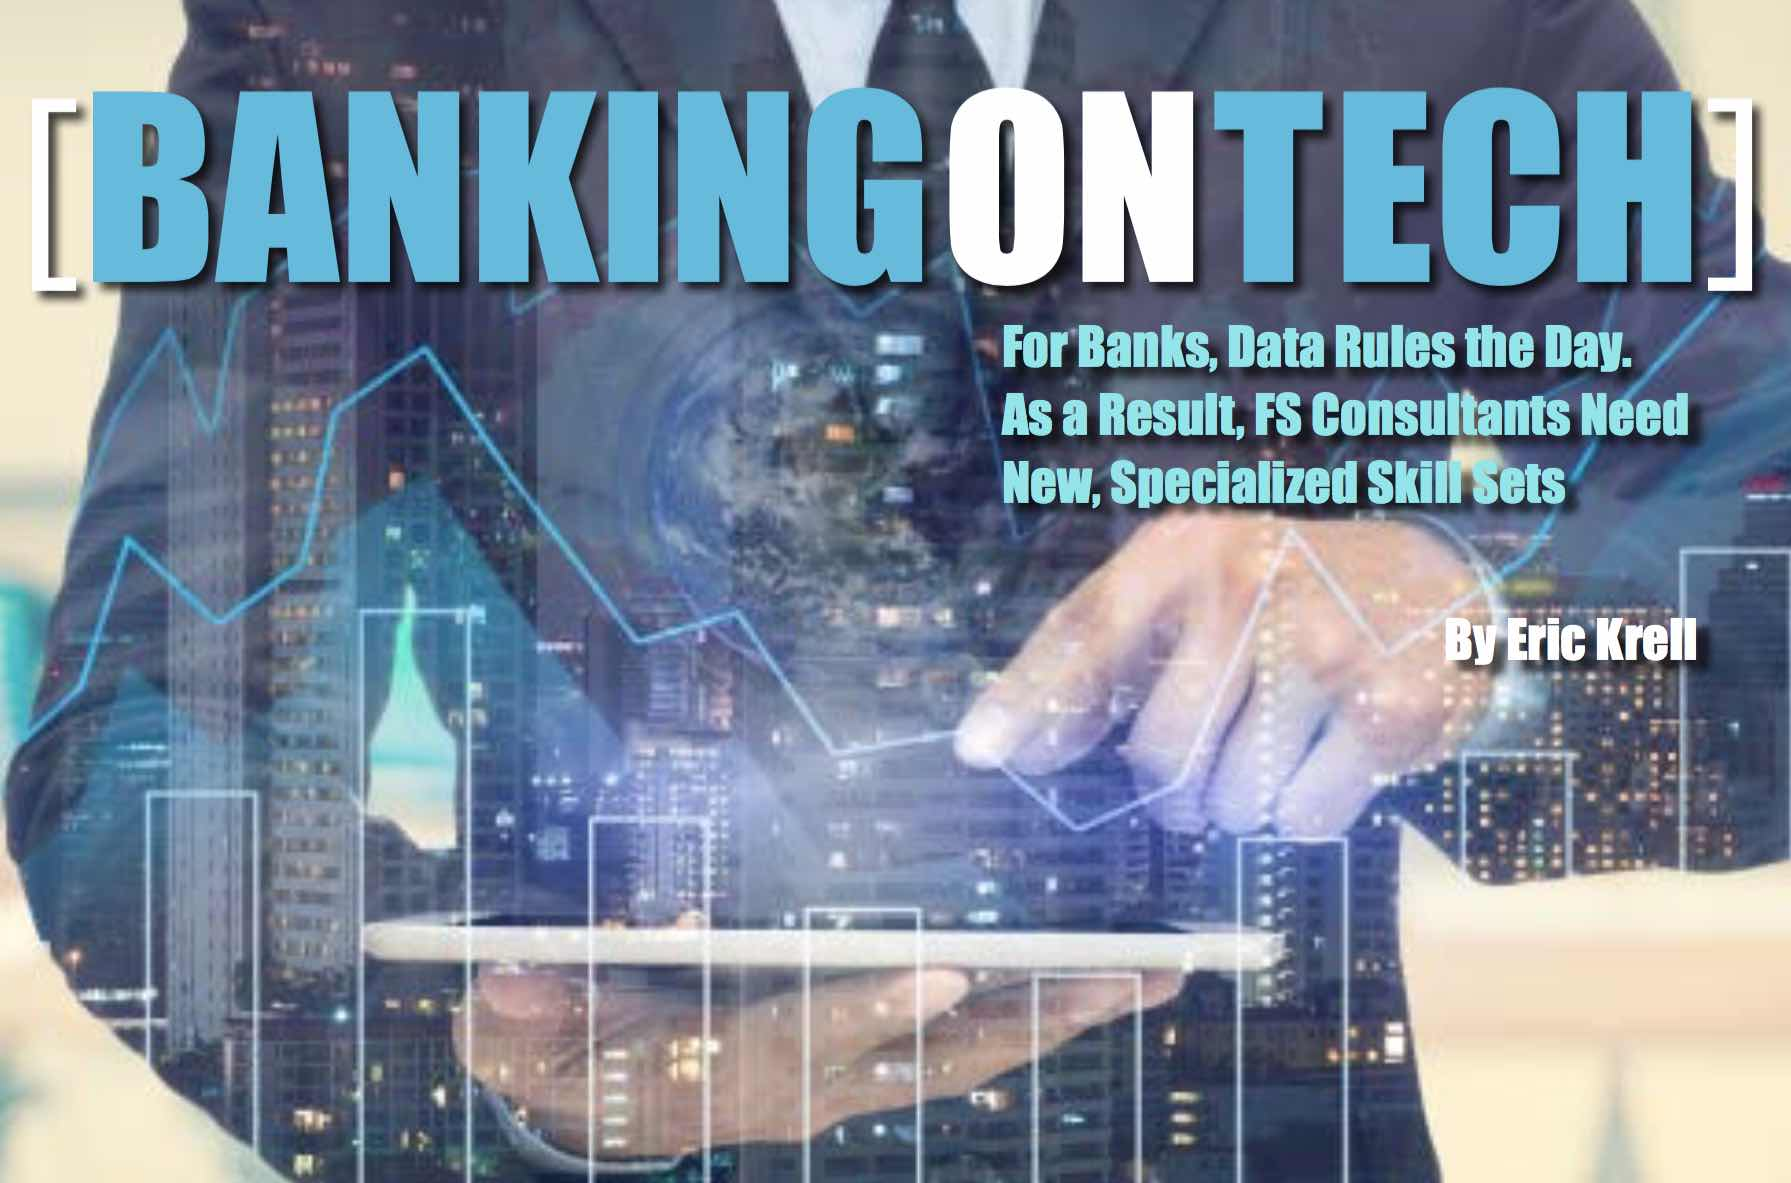 Banking on Tech